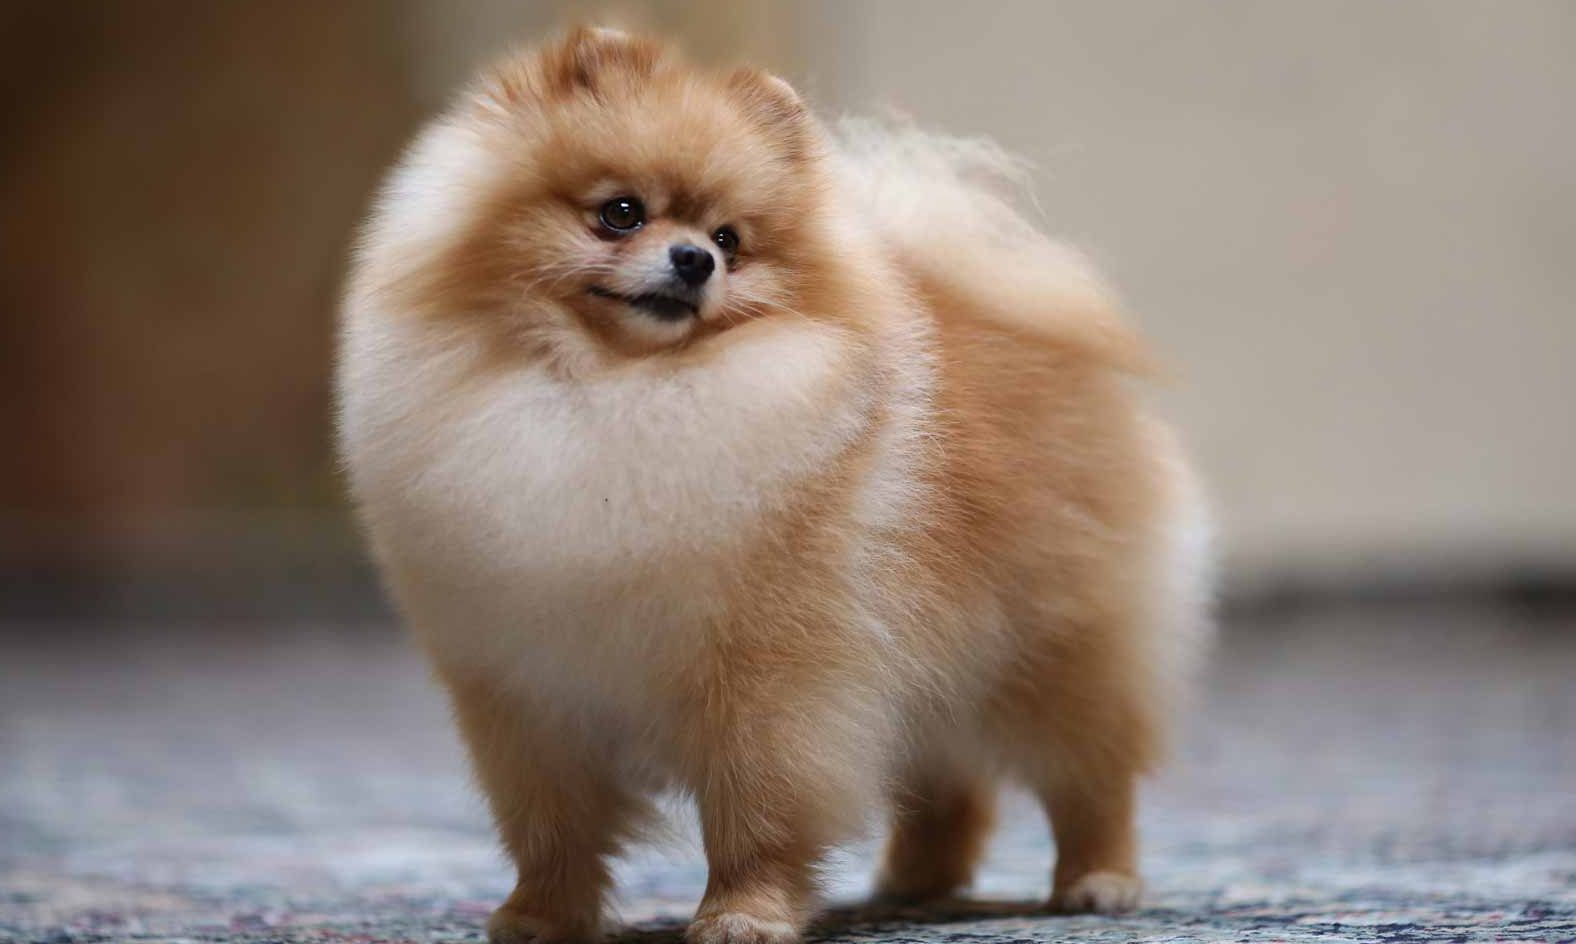 Pomeranian Puppies For Sale Pom Puppies Greenfield Puppies In 2020 Cute Small Dogs Pomeranian Puppy For Sale Pomeranian Puppy